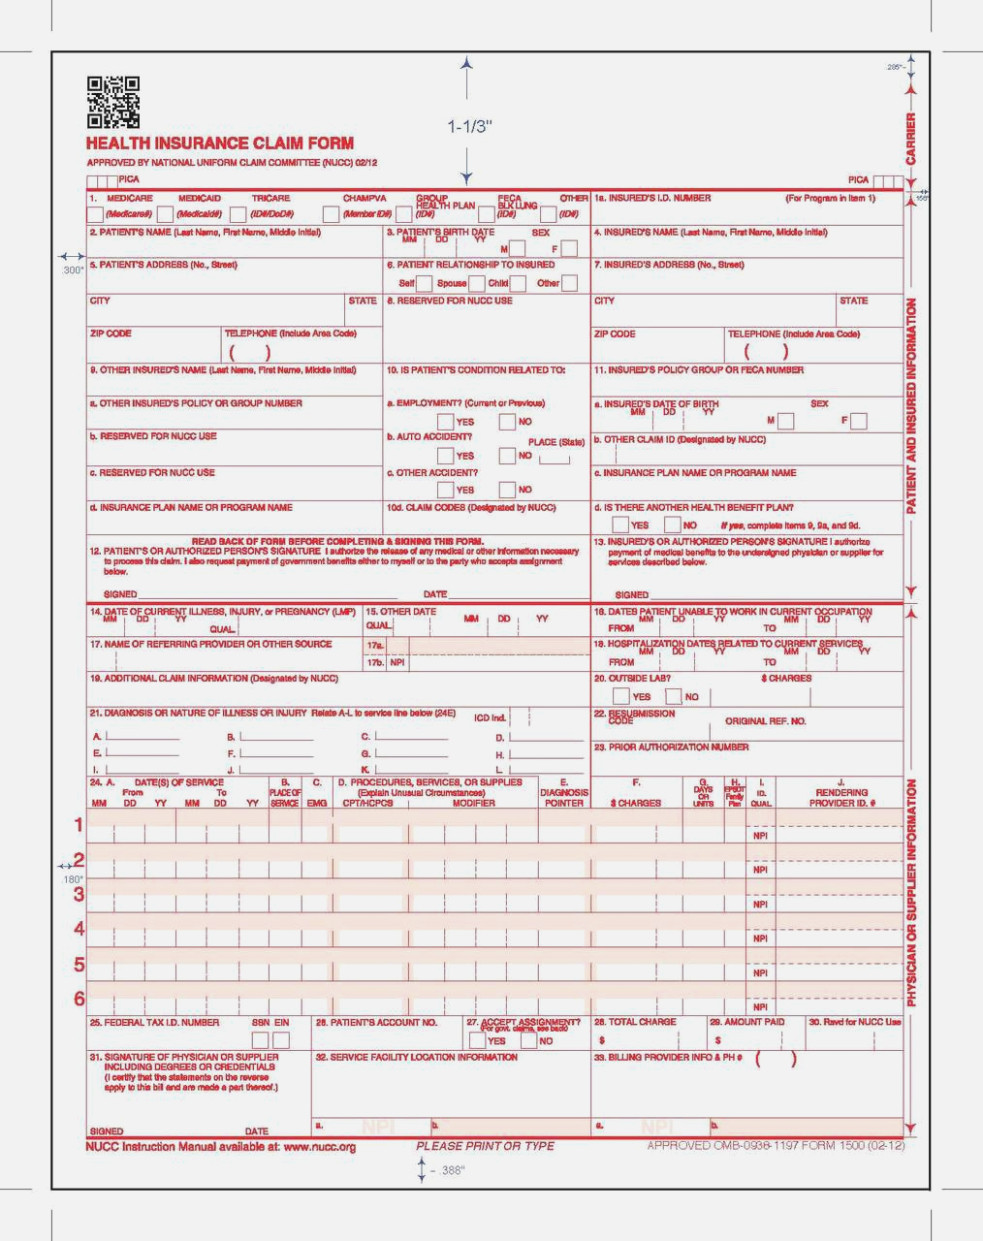 Medicare Billing Form 1500